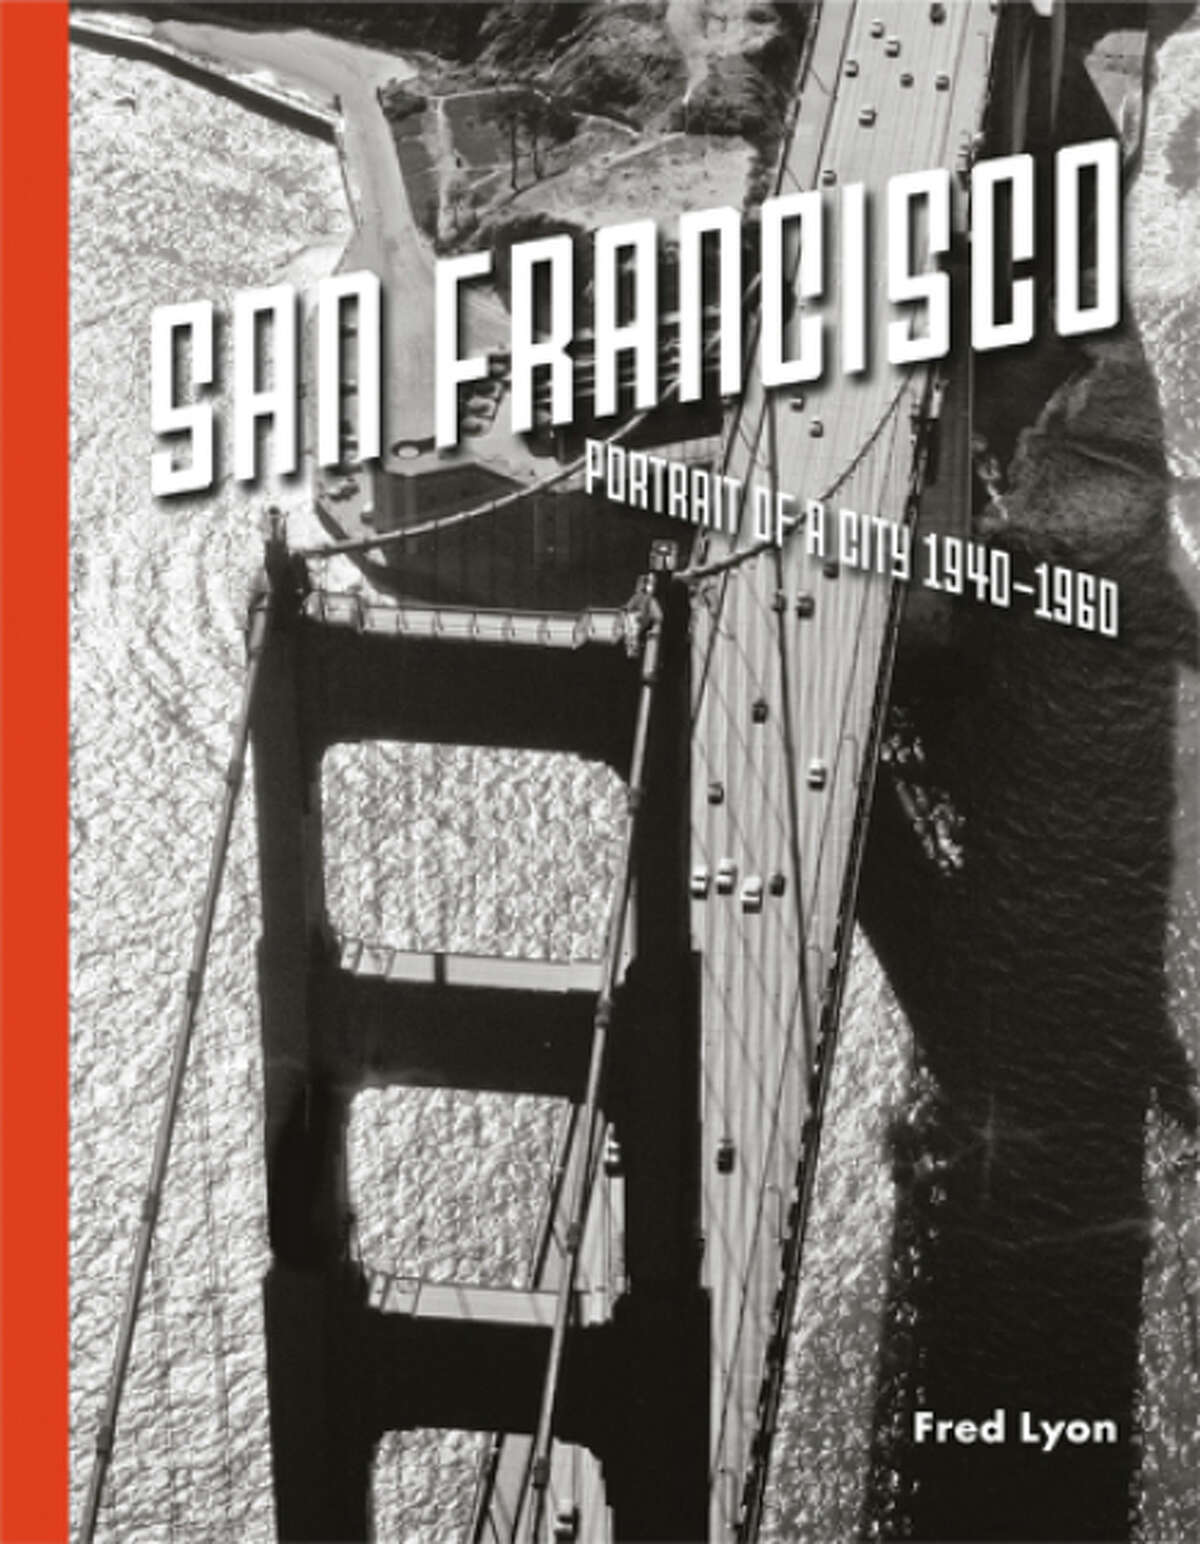 """See the many facets of San Francisco in the black and white photography of Fred Lyon in """"San Francisco: Portrait of a City: 1940-1960."""""""